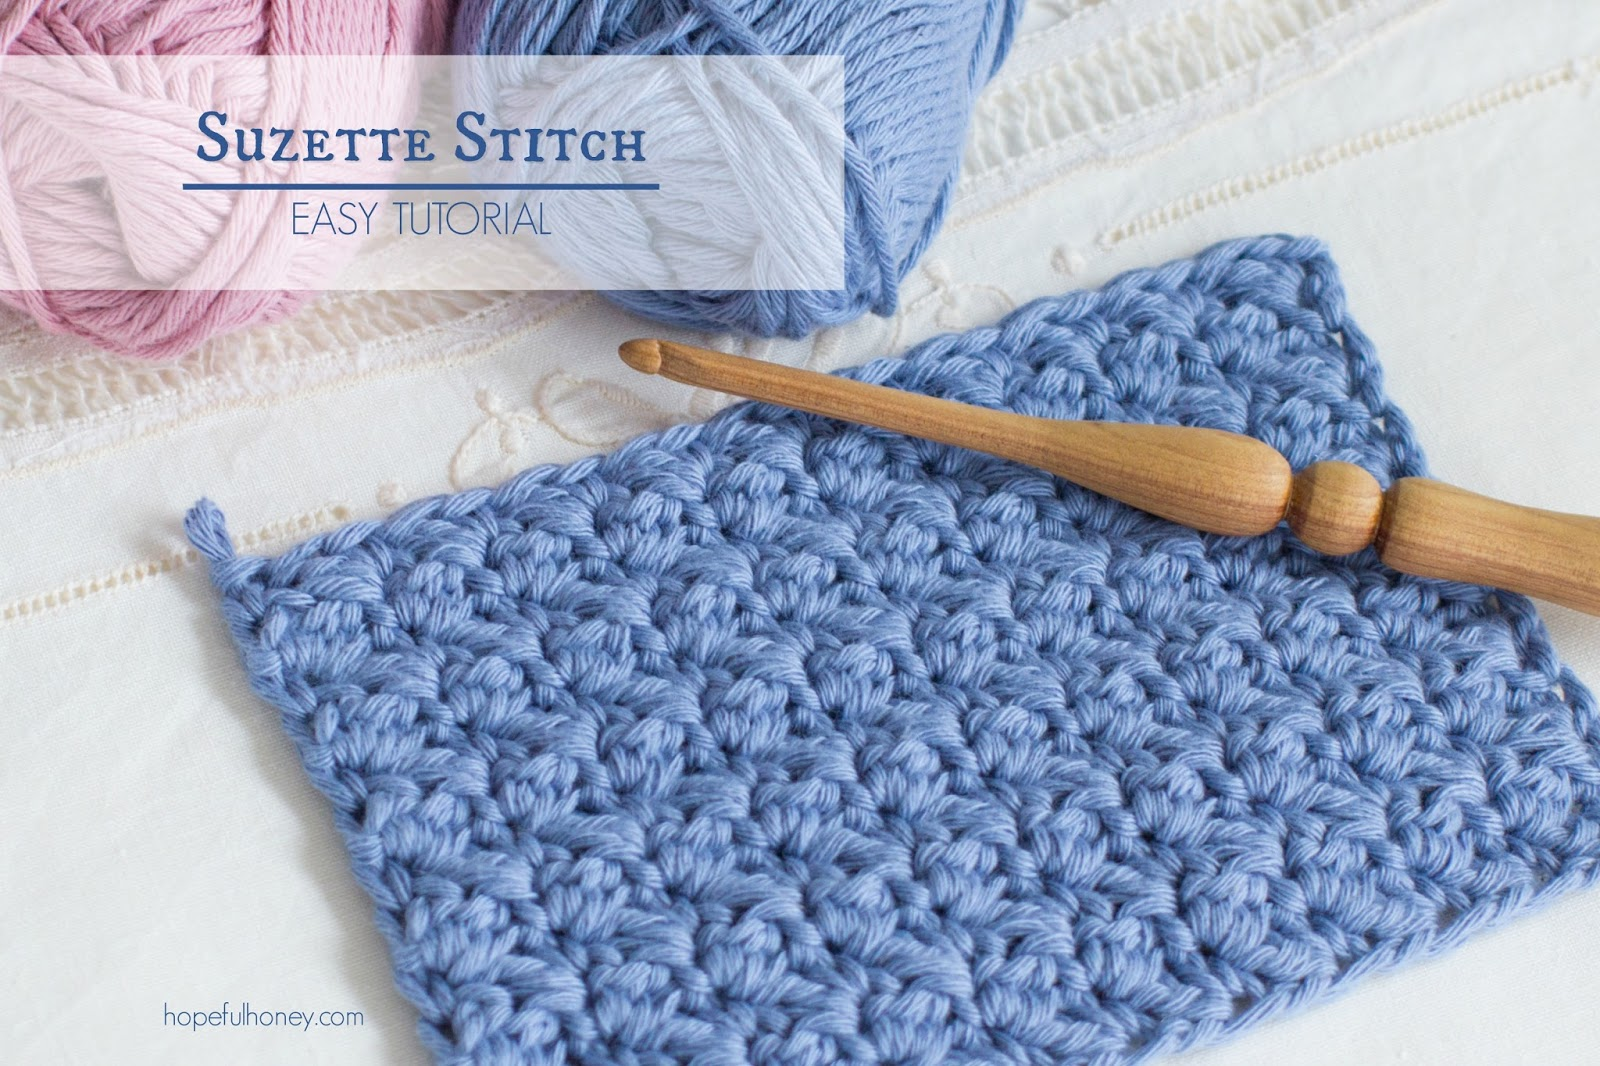 Crocheting Tutorials : ... , Crochet, Create: How To: Crochet The Suzette Stitch - Easy Tutorial